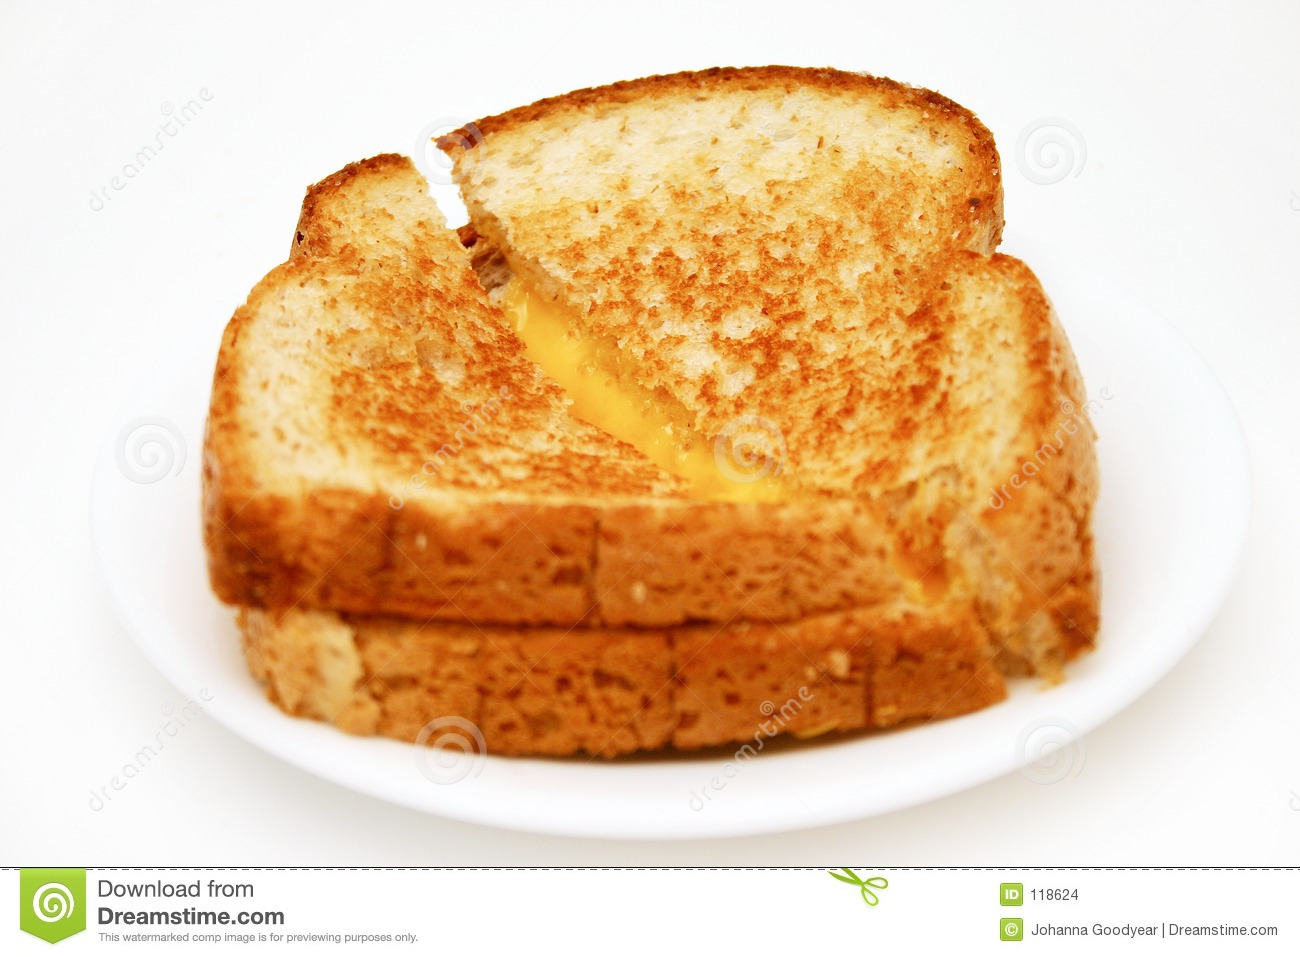 Put your bread in the toaster and choose your settings. Get the toast out on a plate and butter them where the cheese will be. Place a slice of cheese and microwave for 30 seconds. Et voilà! Your grilled cheese is ready. Enjoy ^^